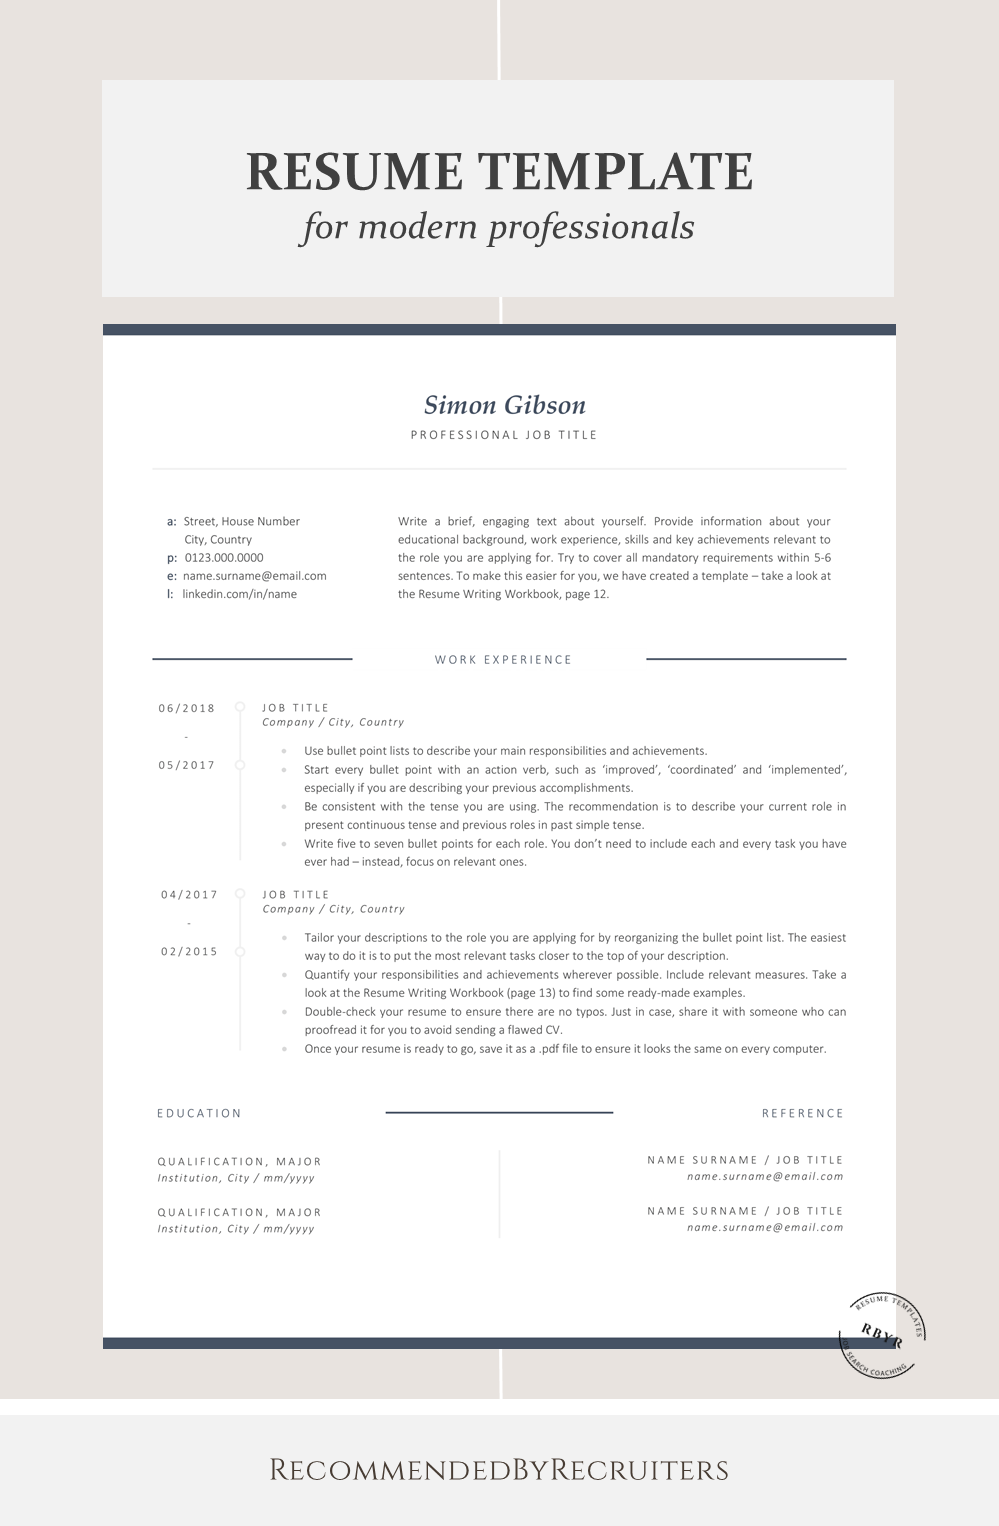 Business Resume Template, Instant Download Professional CV